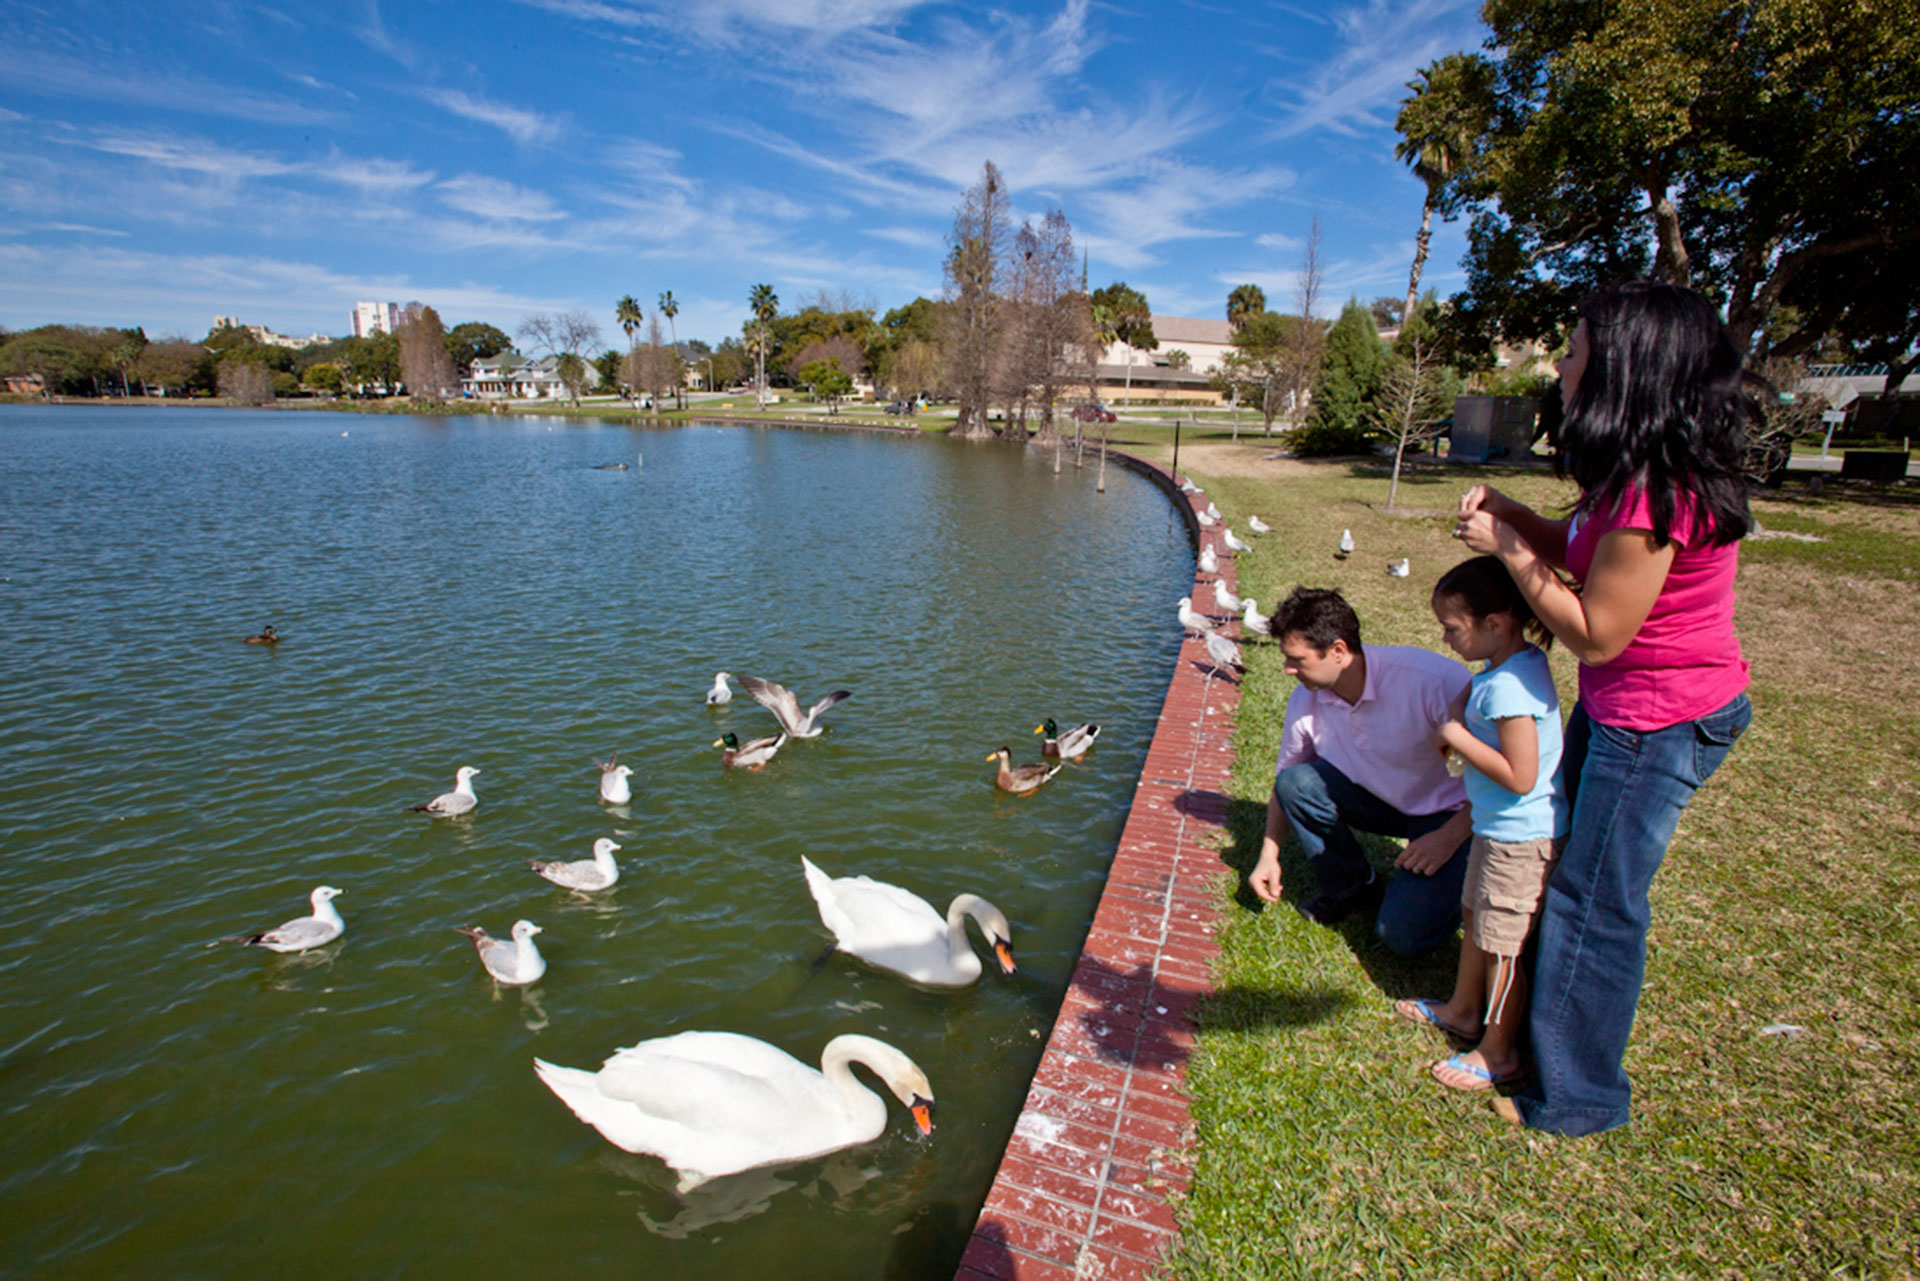 Family Feeding Ducks in Lakeland, FL